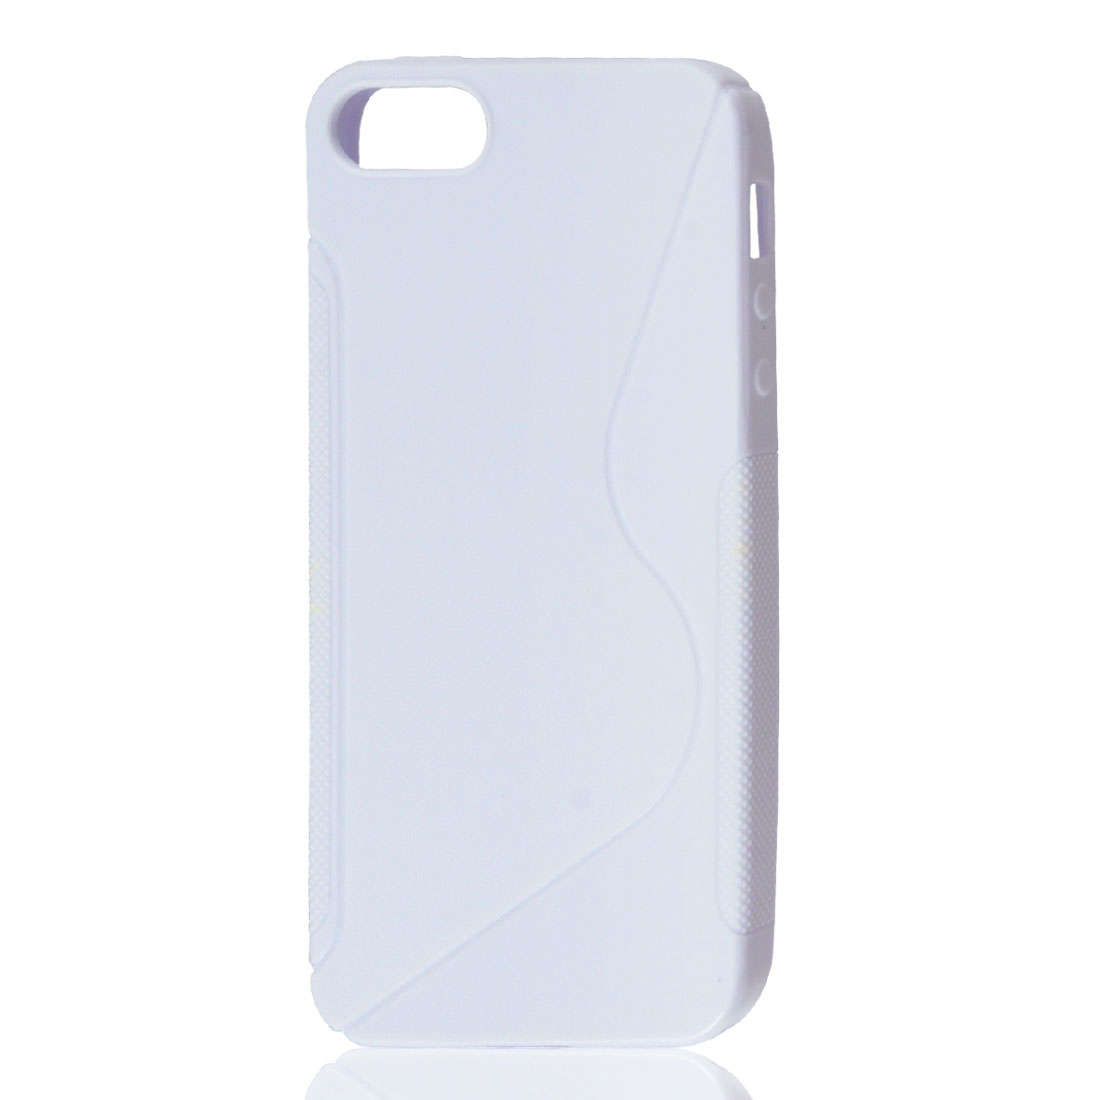 Anti-slip S Shape Grip White Soft Case Cover for Apple iPhone 5 5G 5th